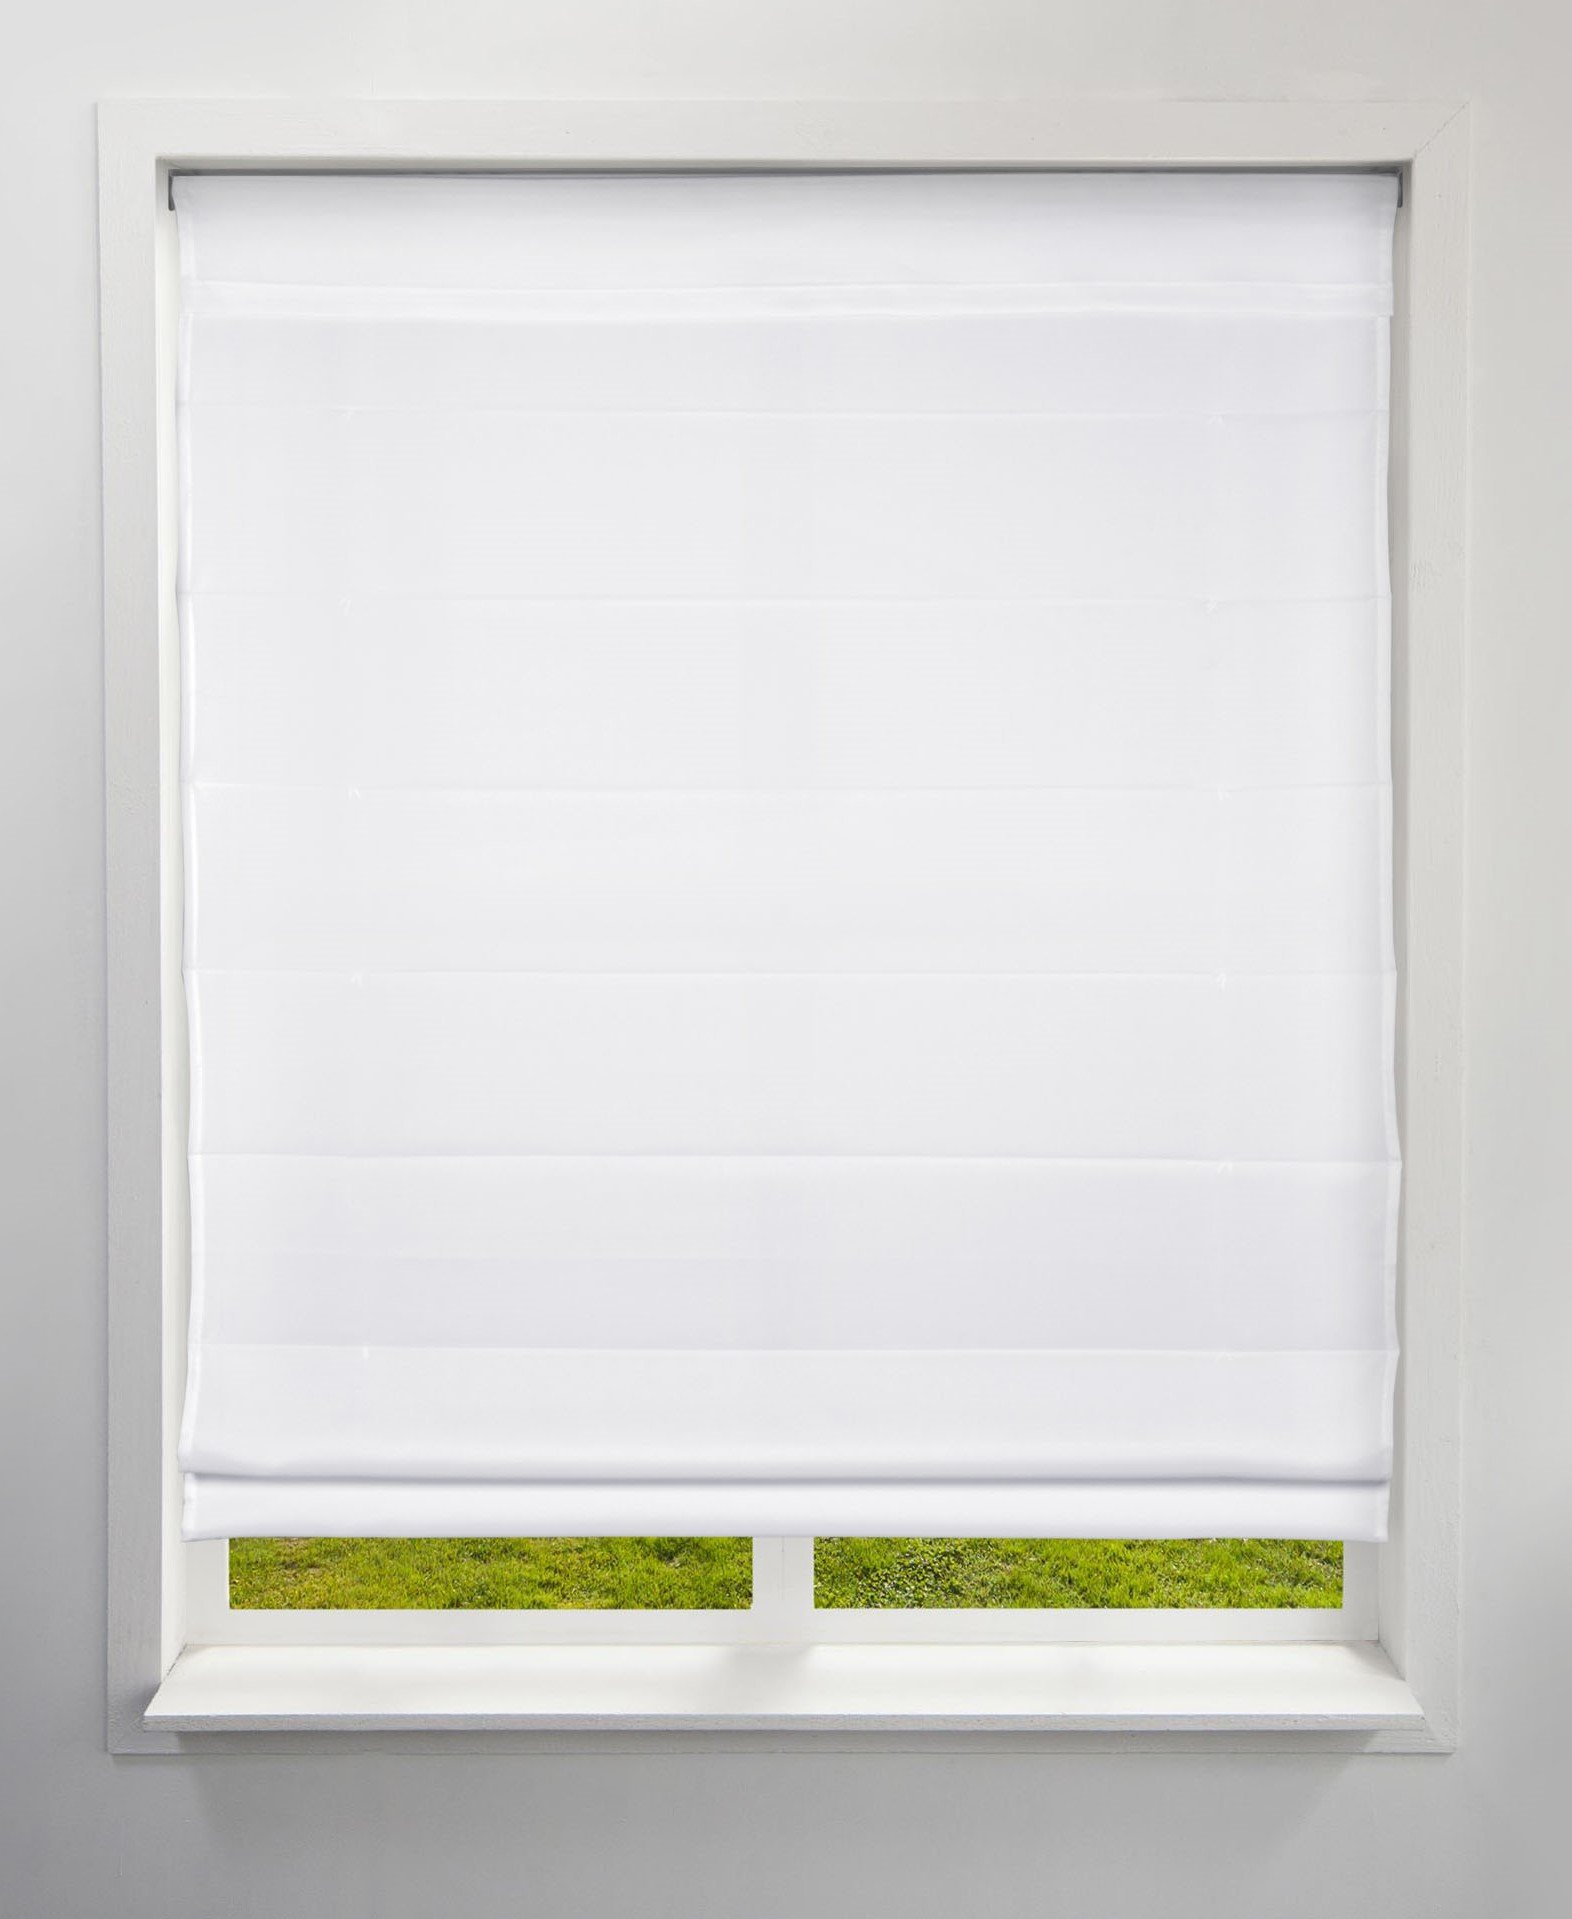 Arlo Blinds Light Filtering Fabric Roman Shades, Color: Cloud White, Size: 24'' W x 60'' H, Cordless Lift Window Blinds by Arlo Blinds